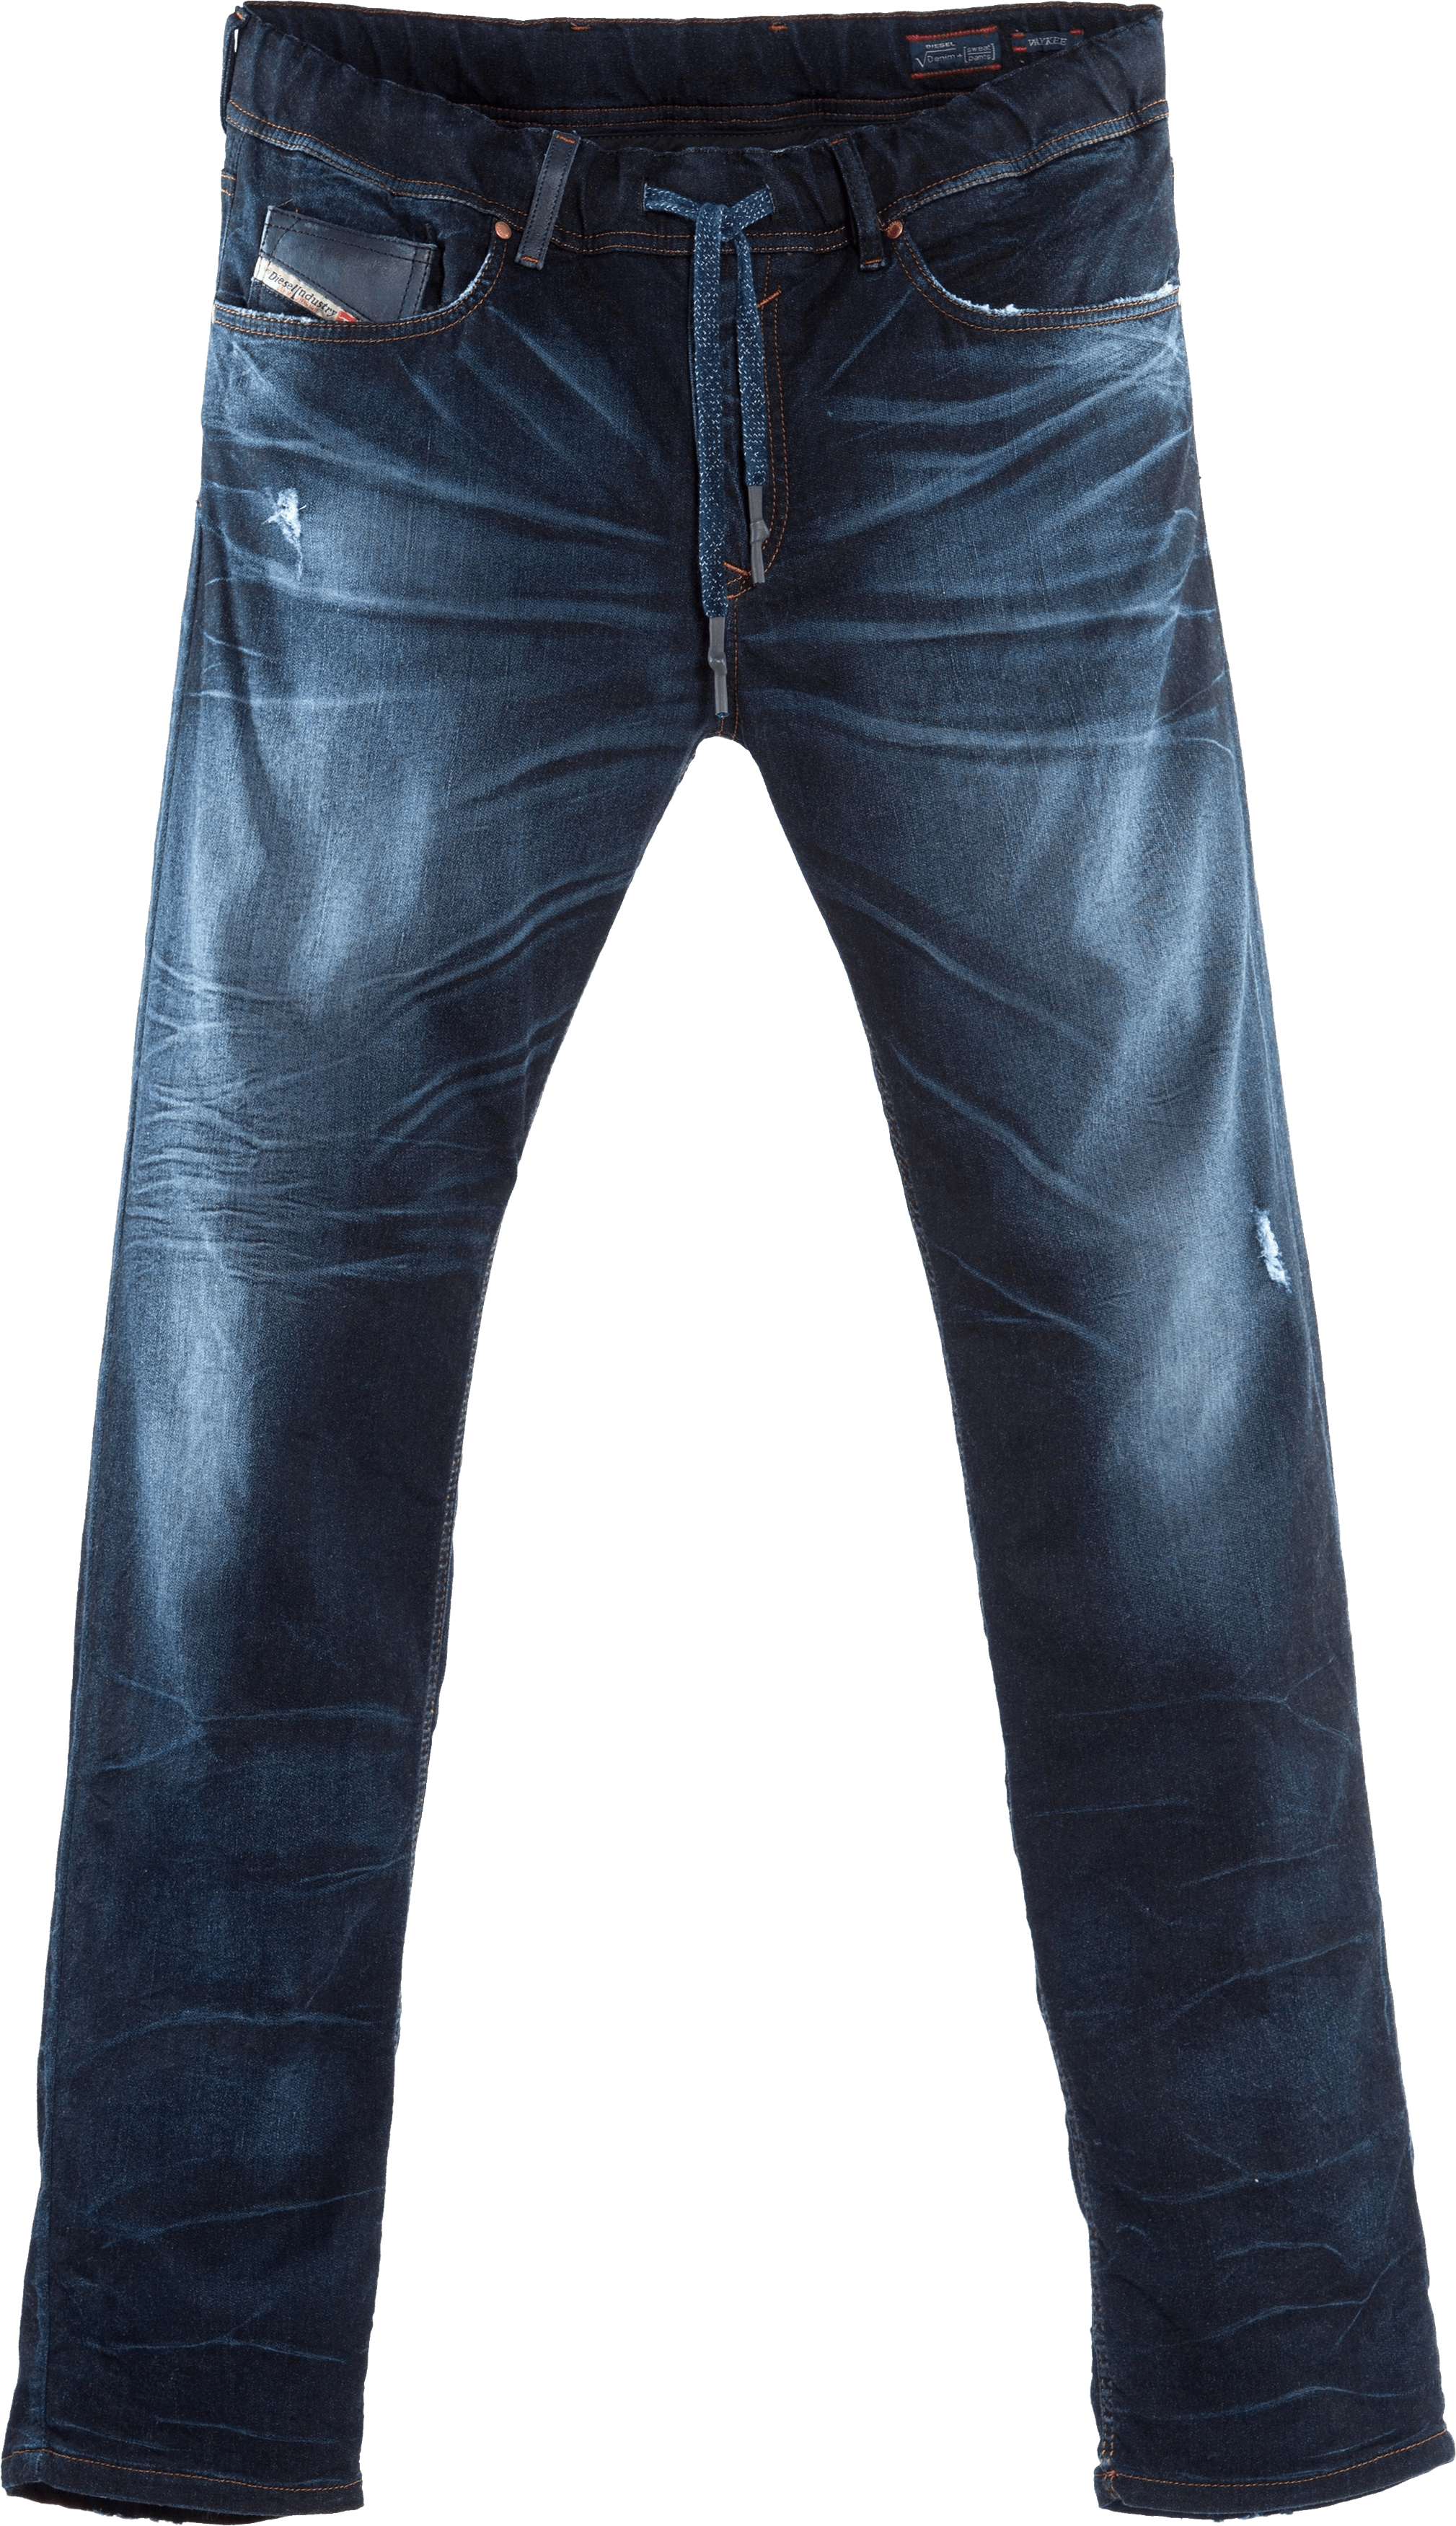 Damage jeans clipart download graphic transparent download Jeans Png & Free Jeans.png Transparent Images #160 - PNGio graphic transparent download